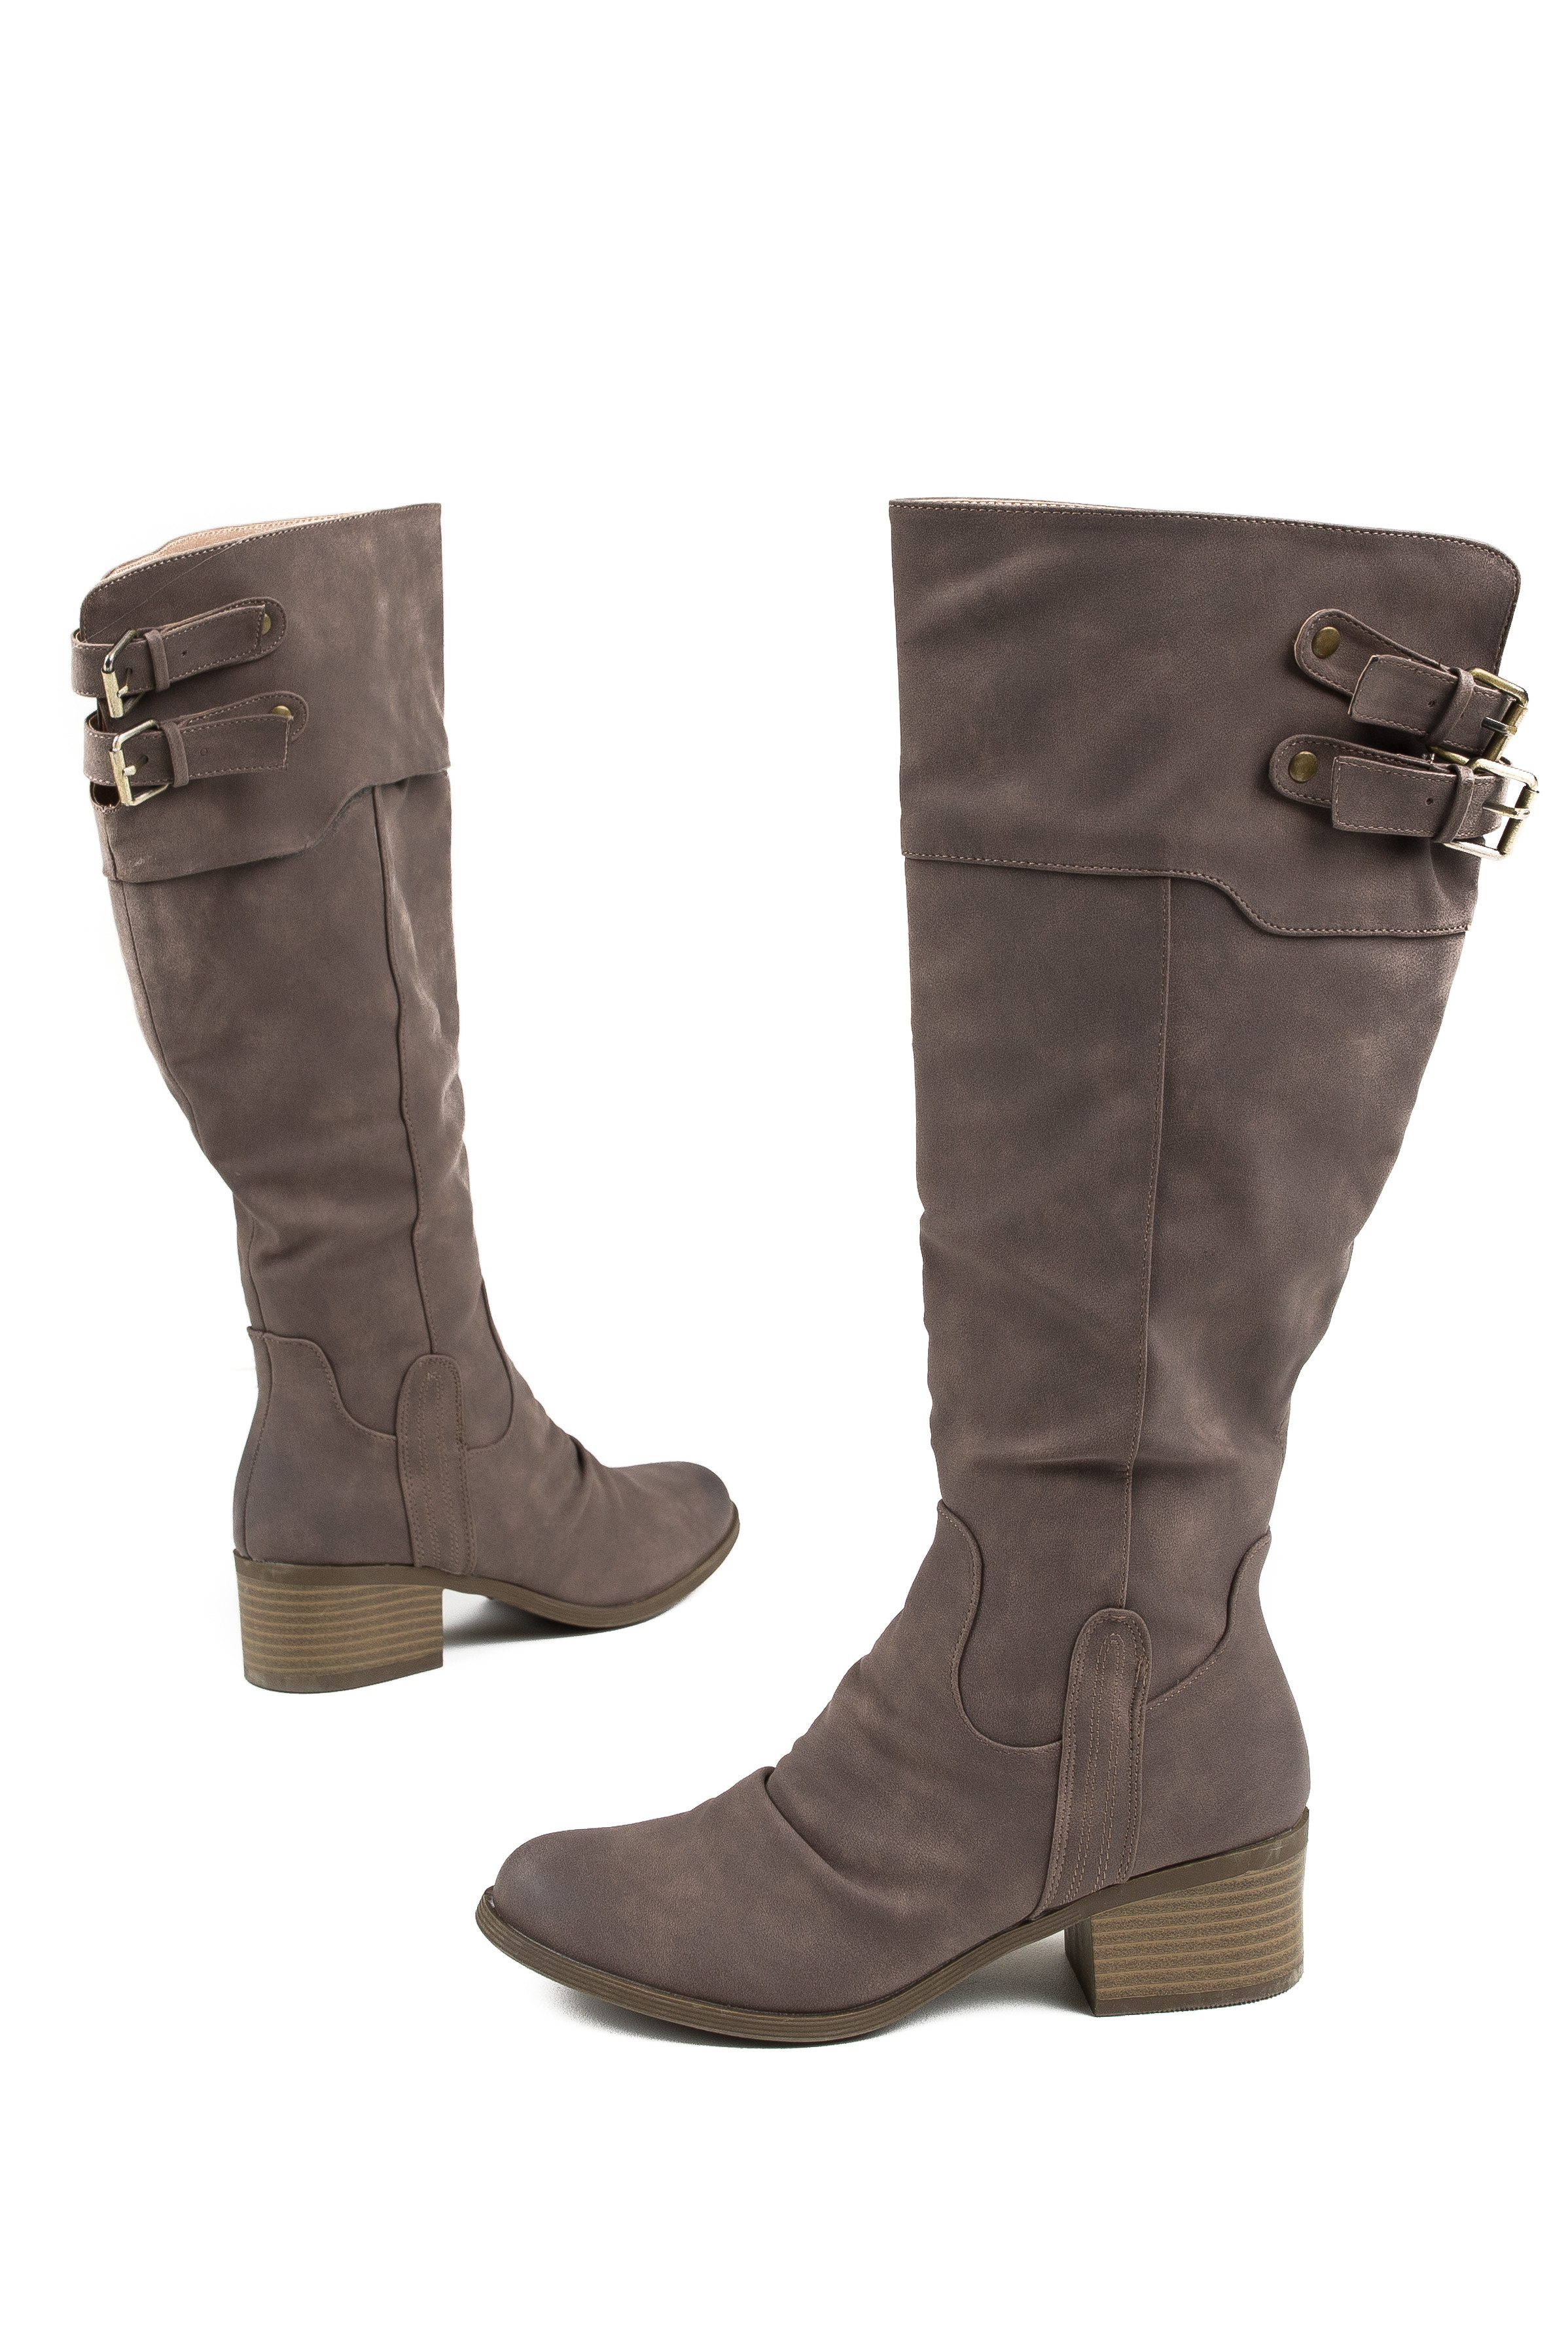 Cocoa Tall High Heeled Boots with Brass Buckle Details details